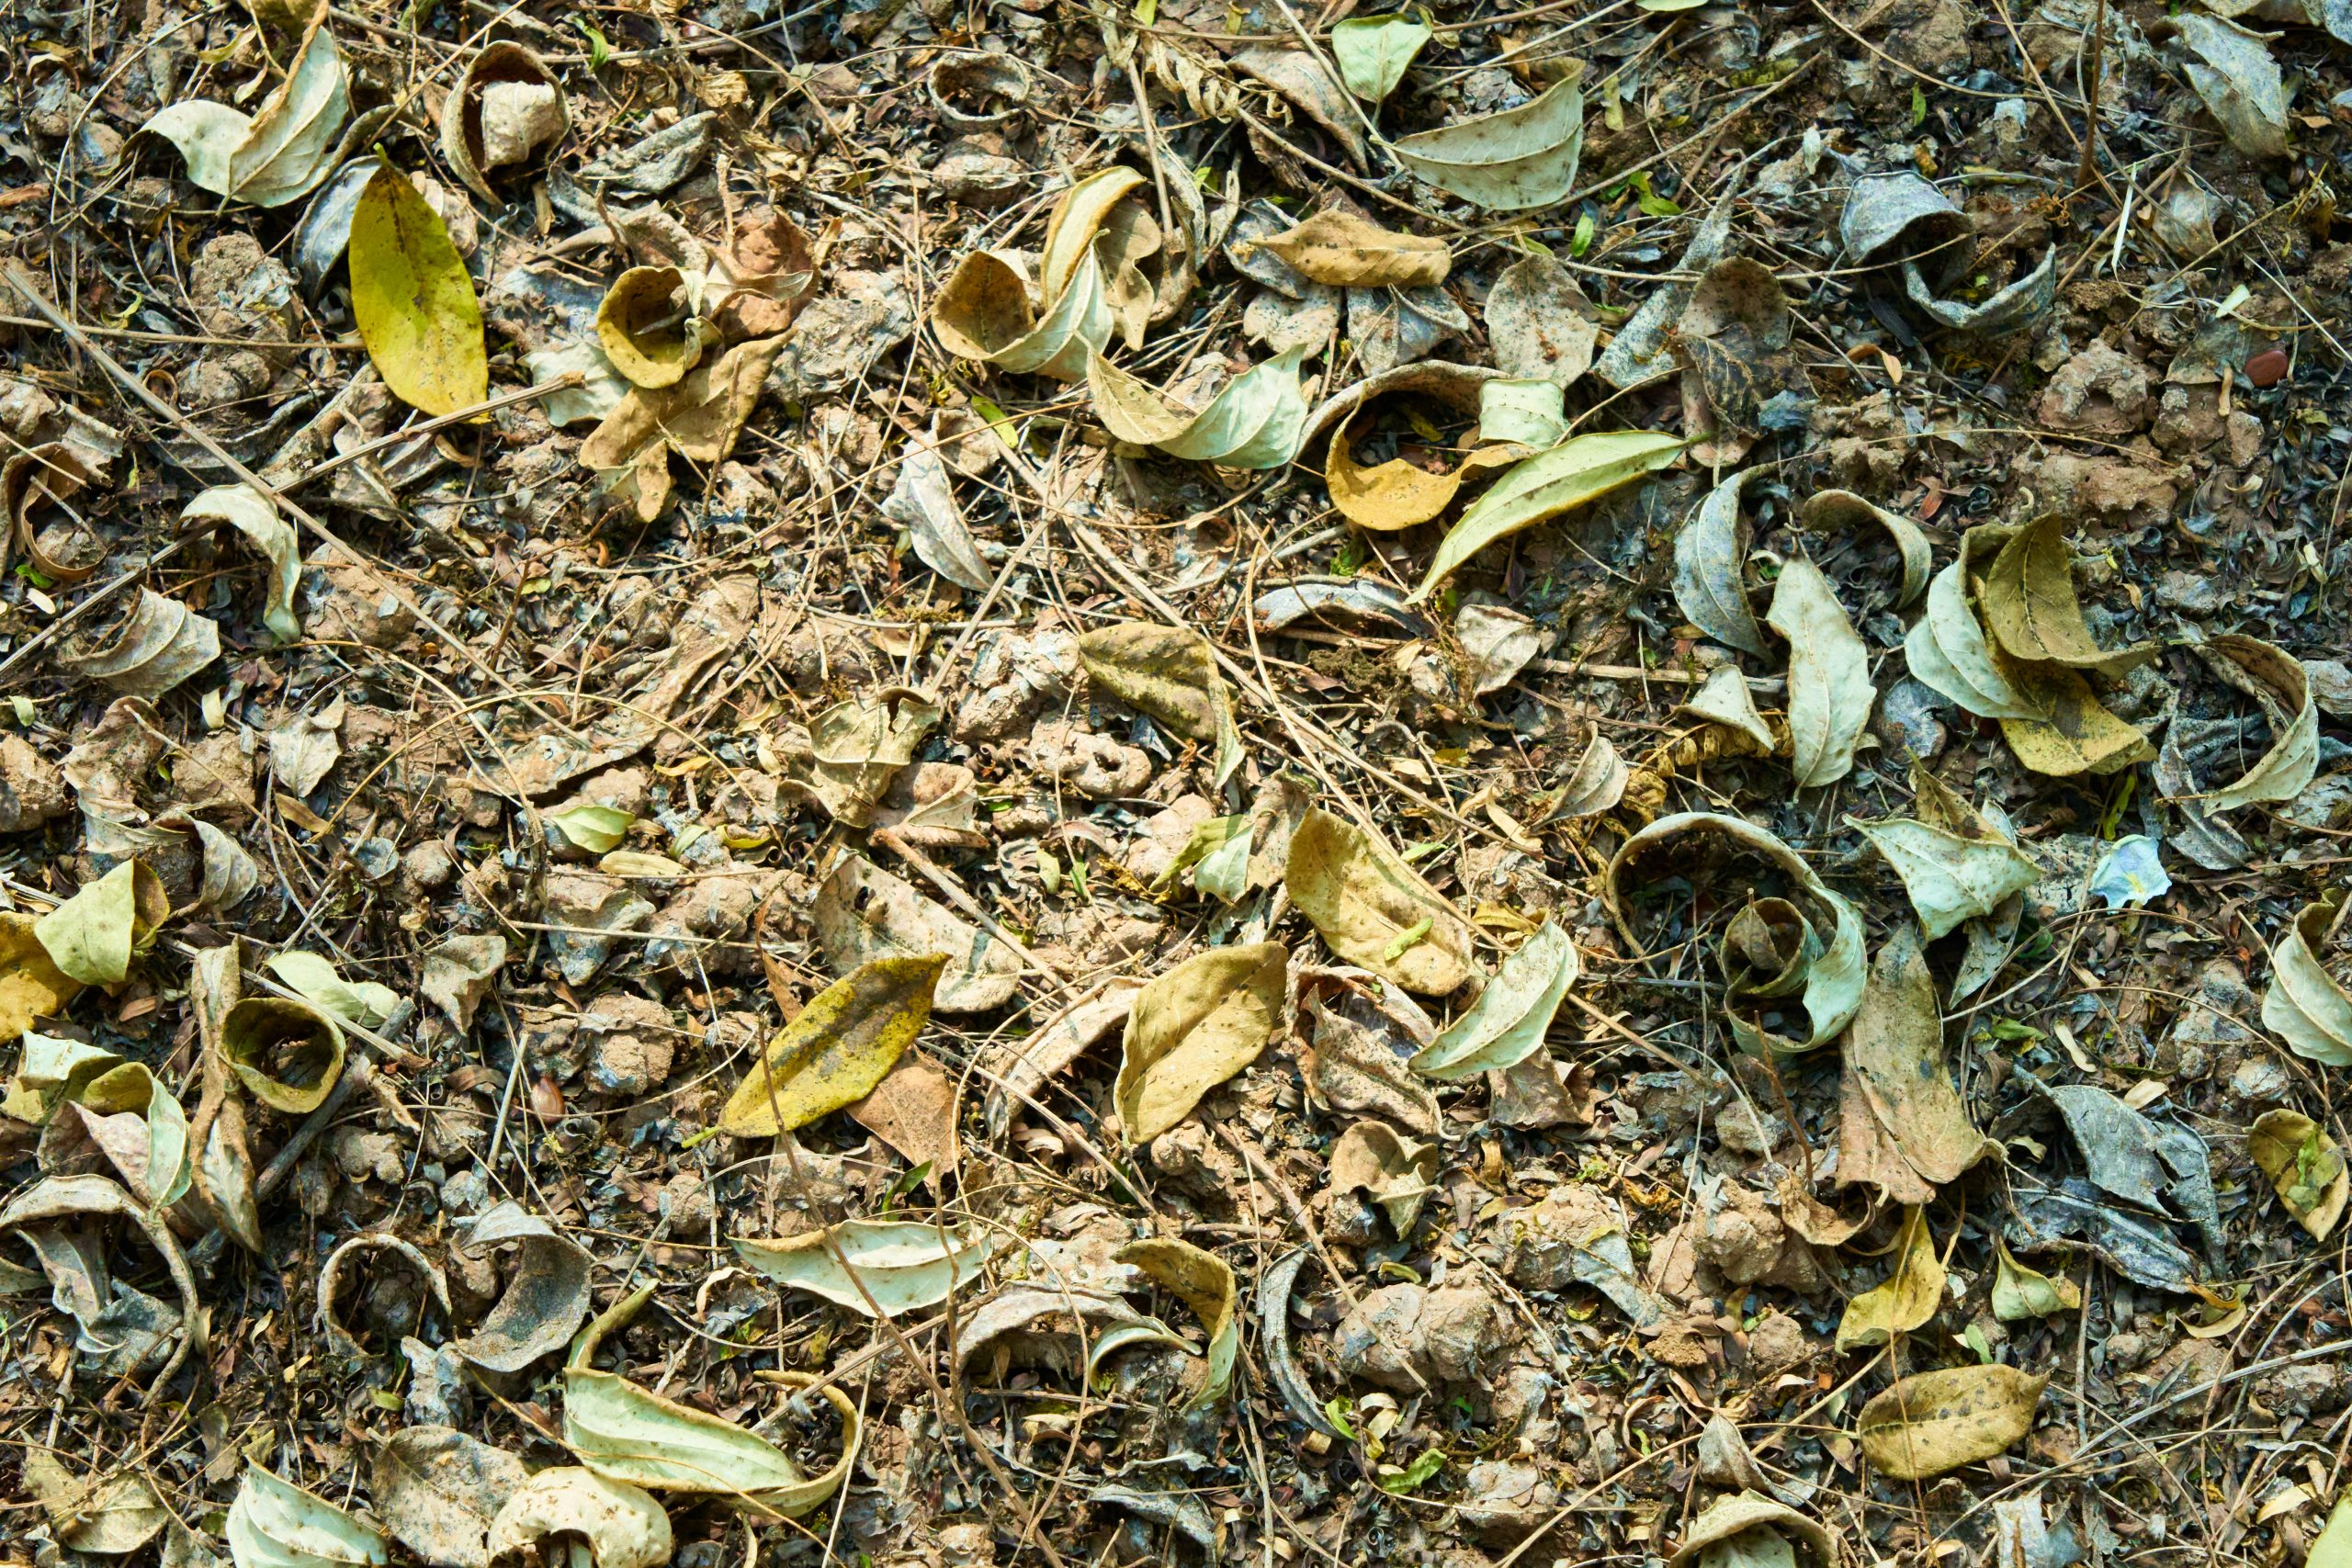 Fallen leaves of a plant